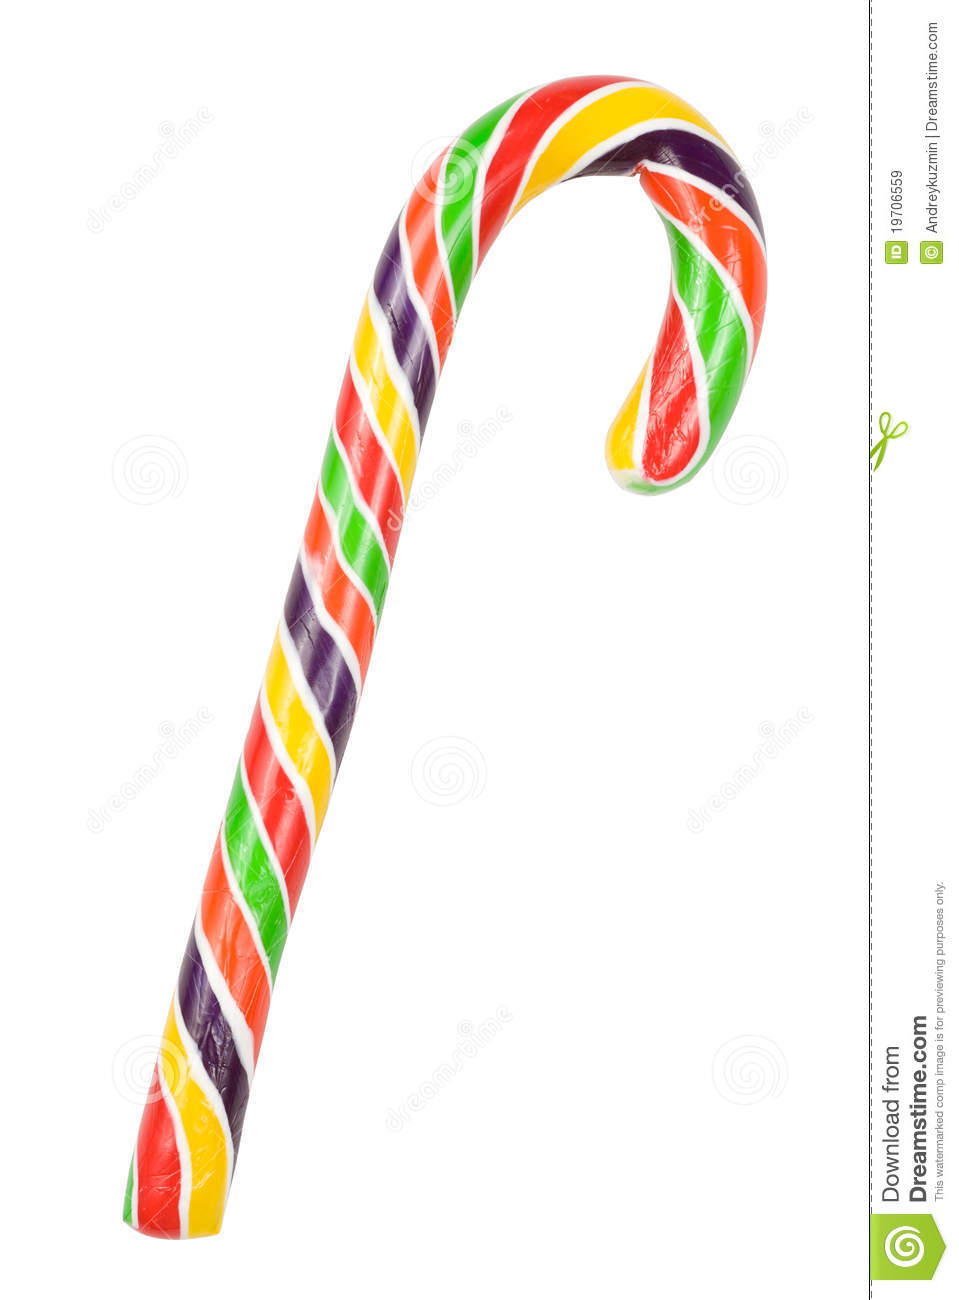 Colorful Candy Canes Colorful candy cane isolated